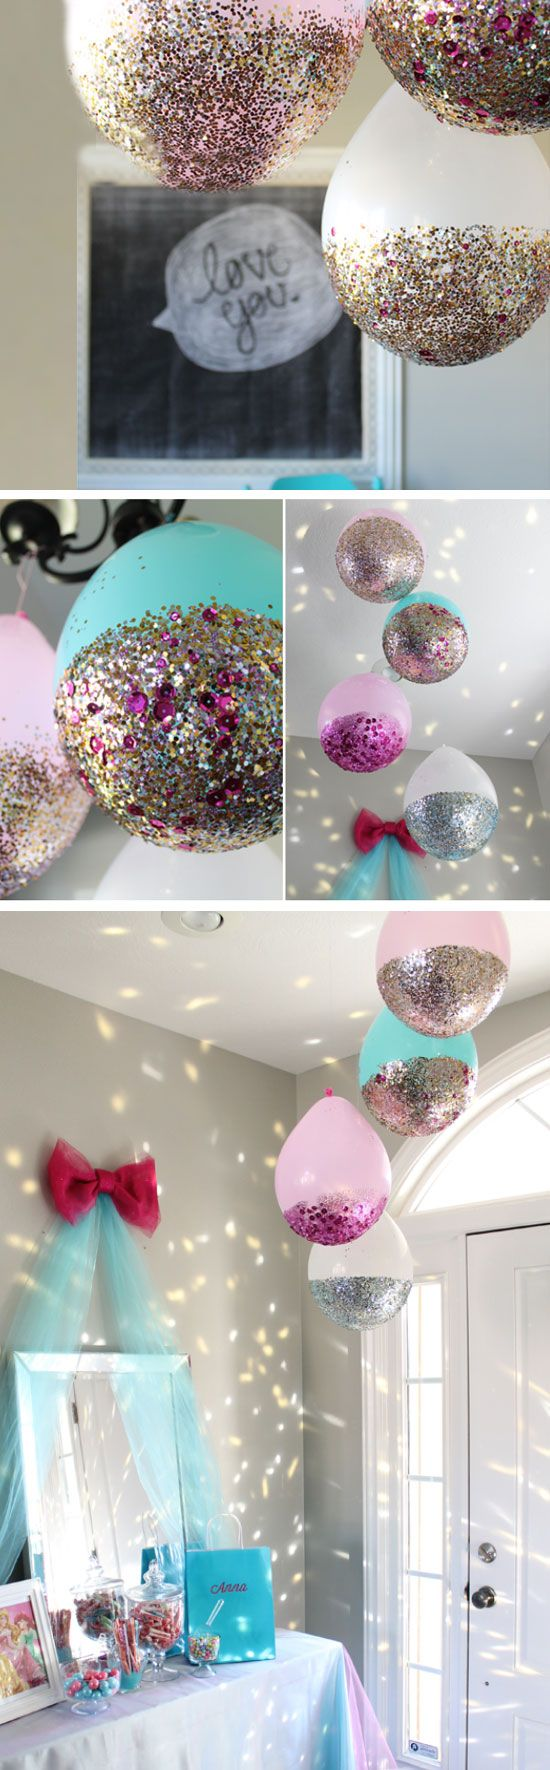 These party ideas include a variety of